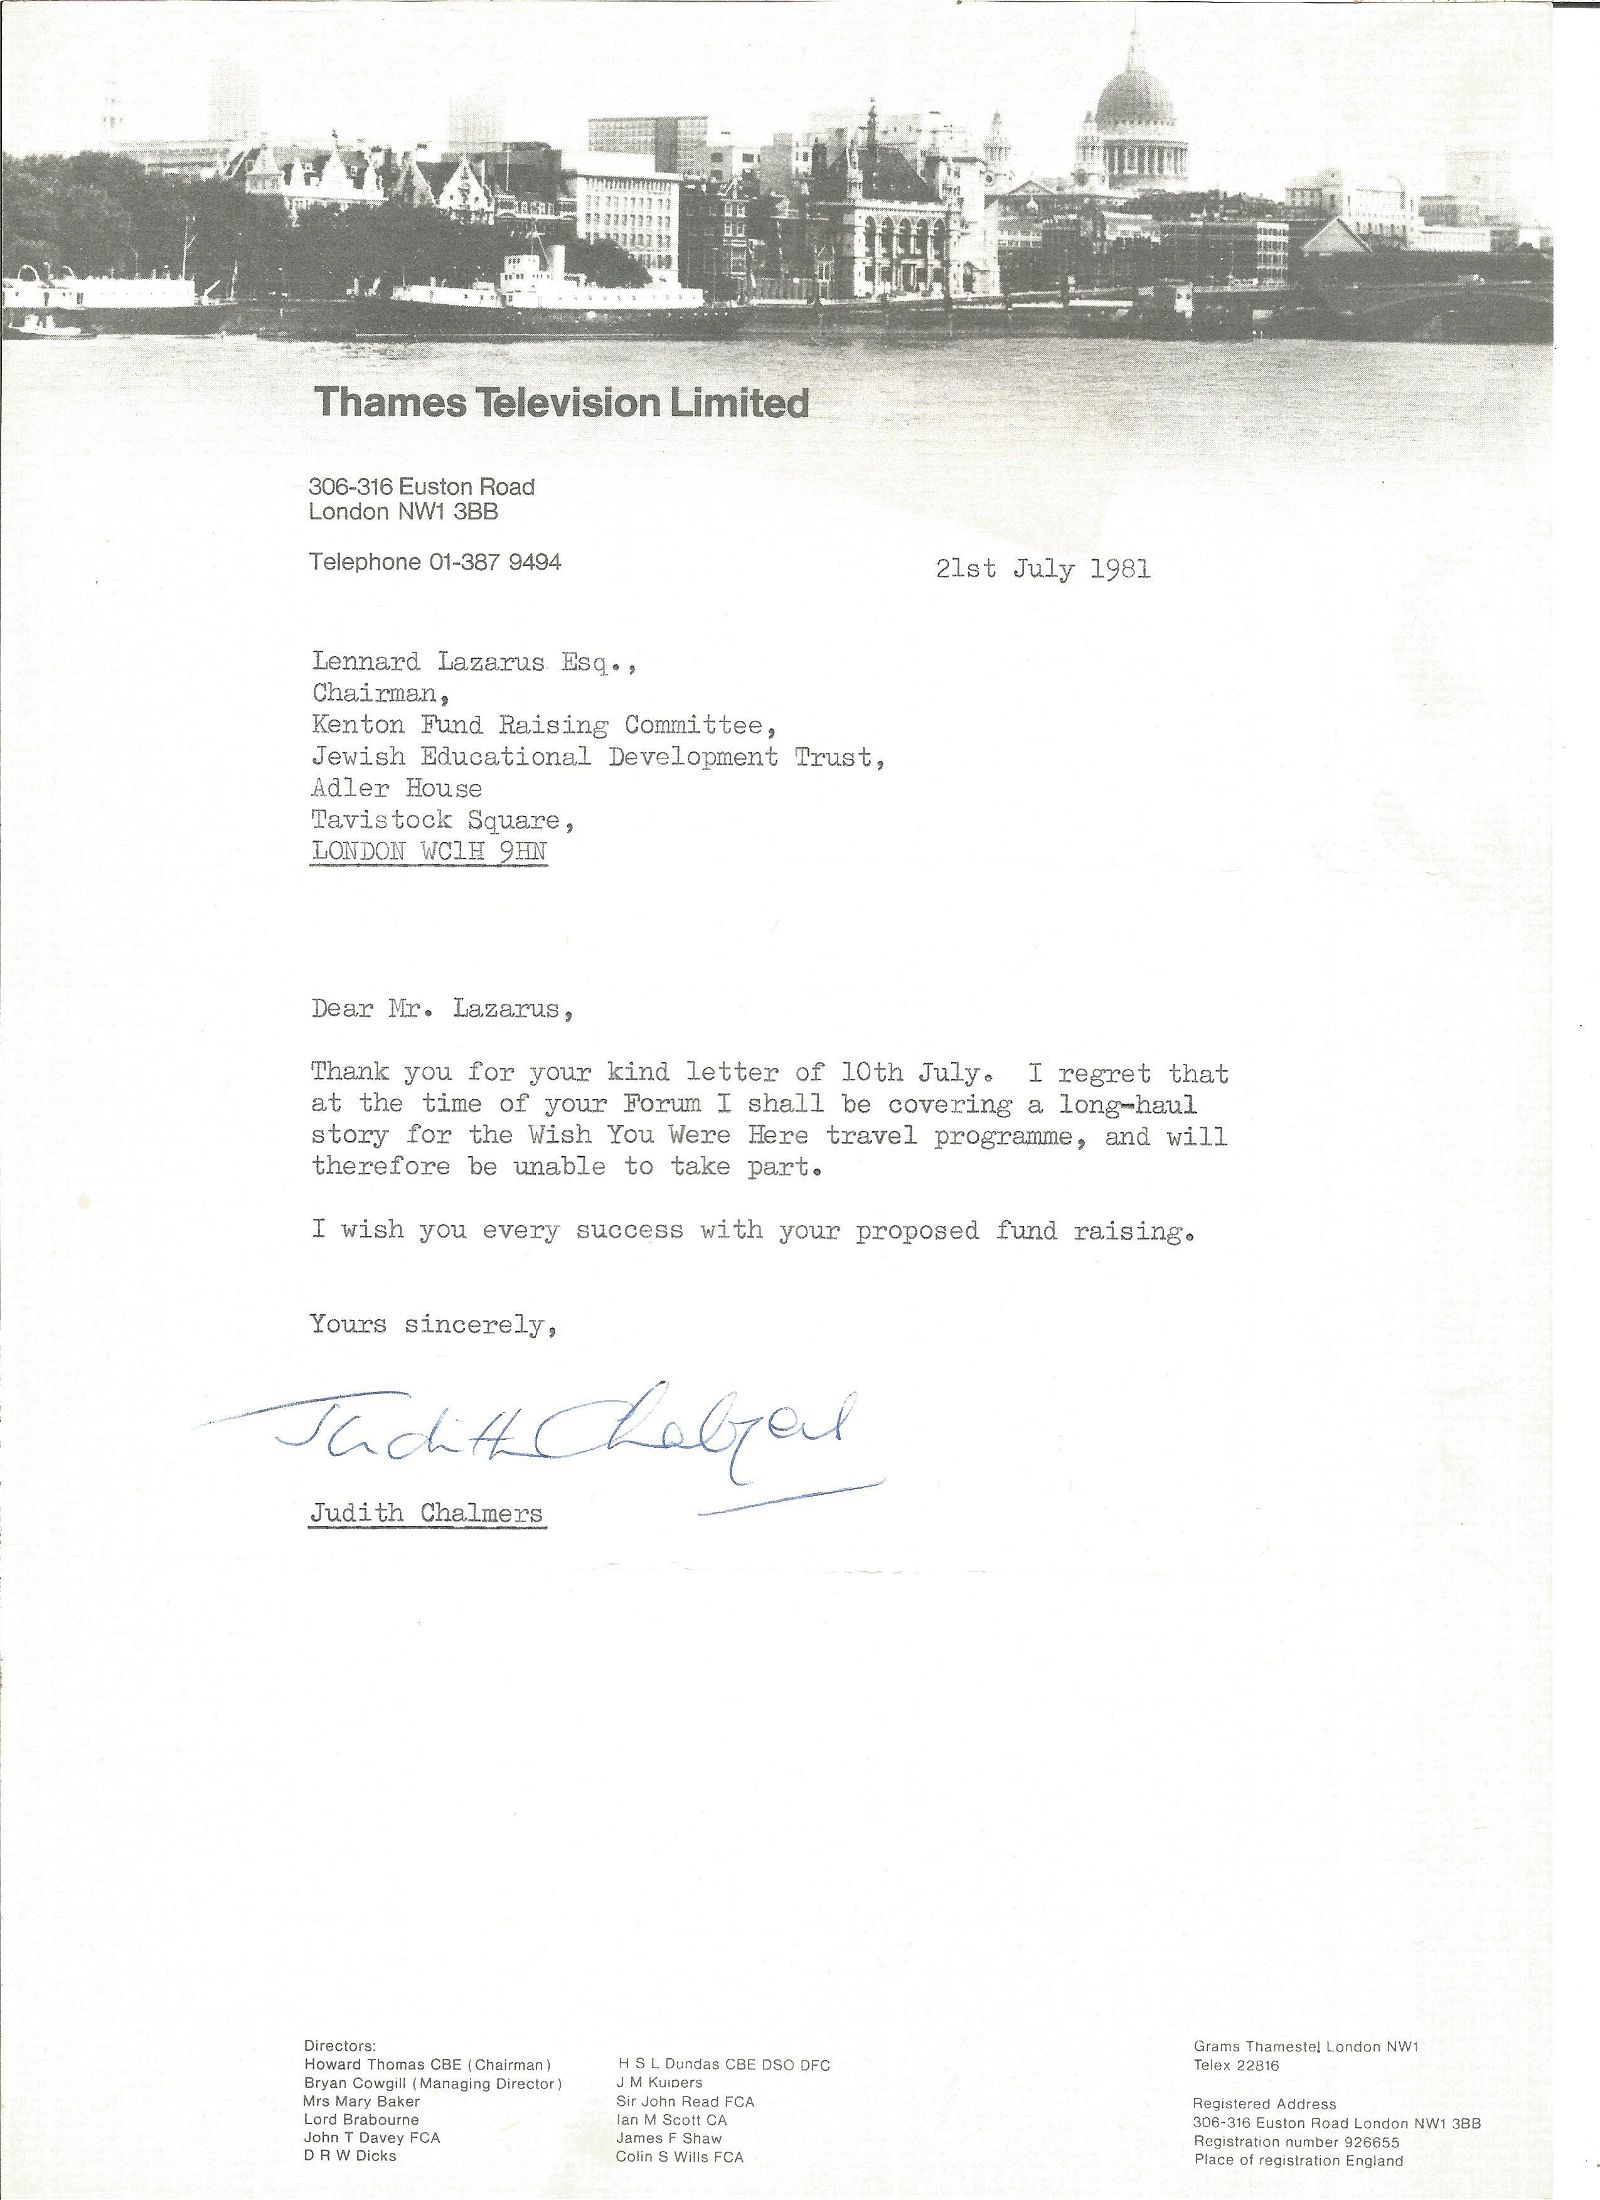 Judith Chalmers TLS dated 21/7/81. All autographs come